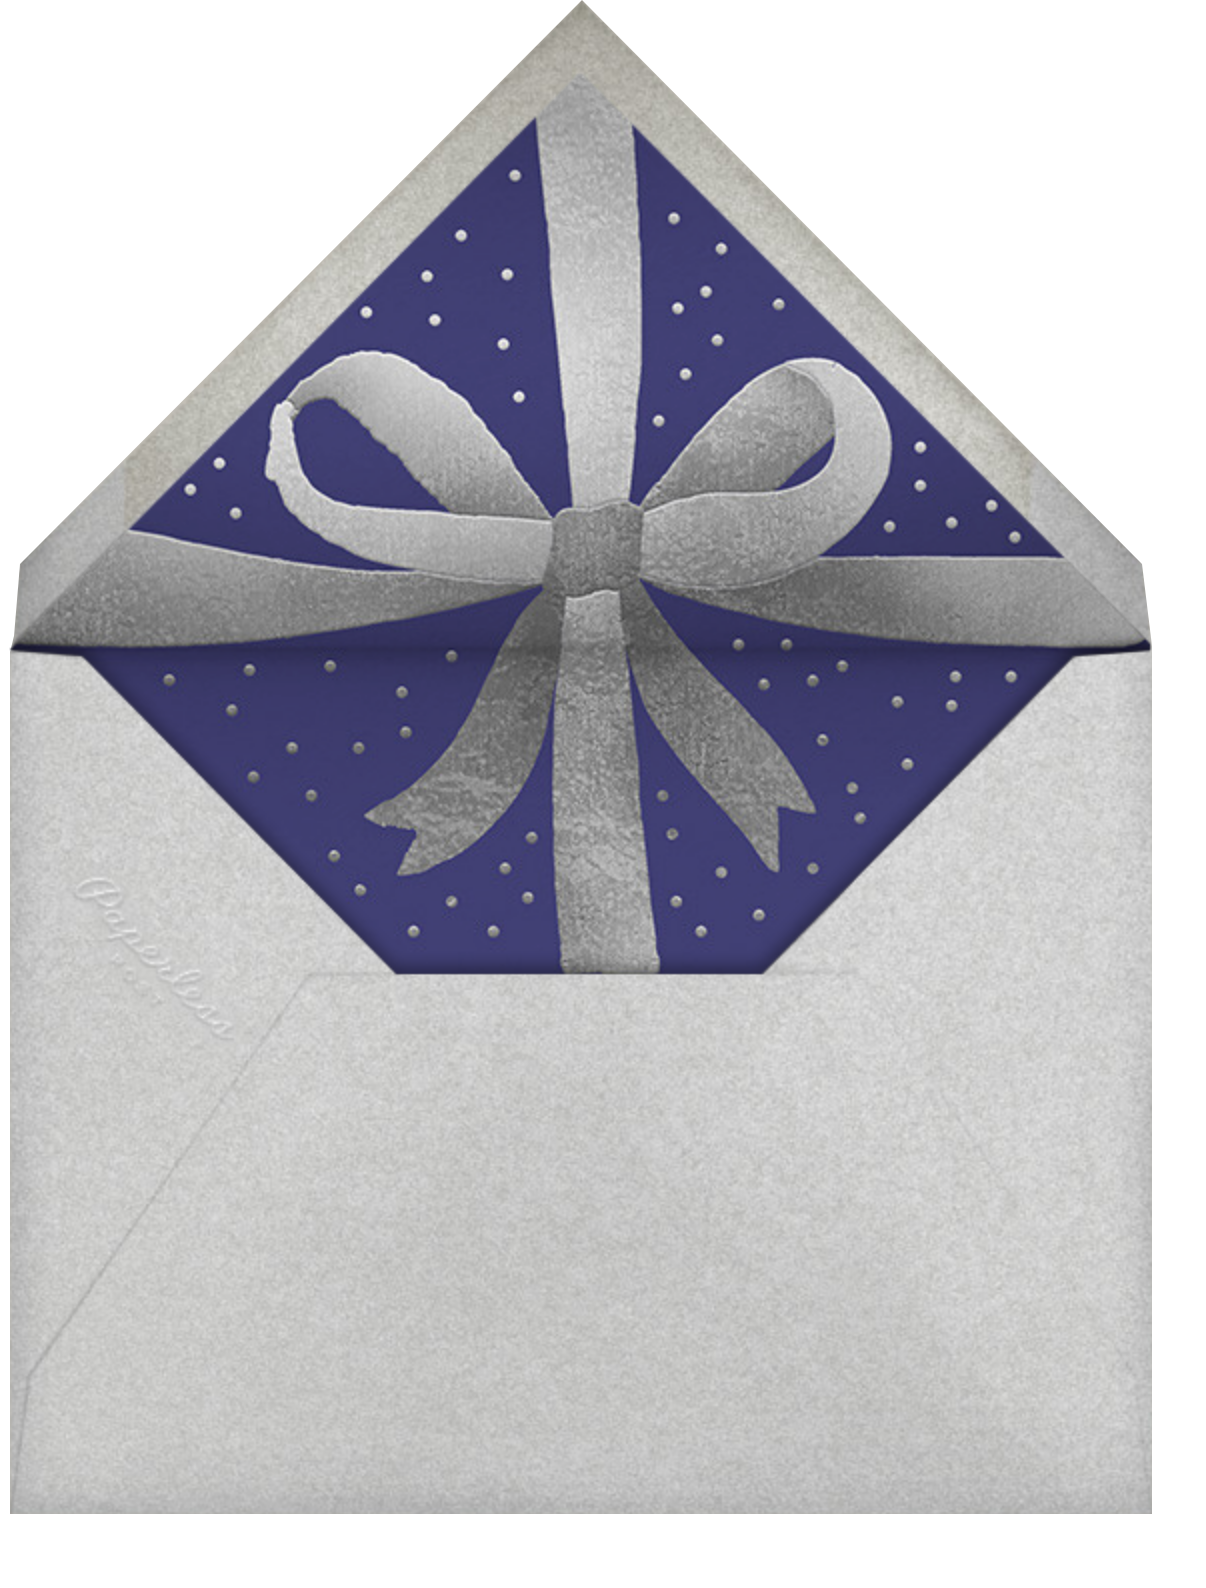 Wrapped with Love - Indigo - Paperless Post - Hanukkah - envelope back